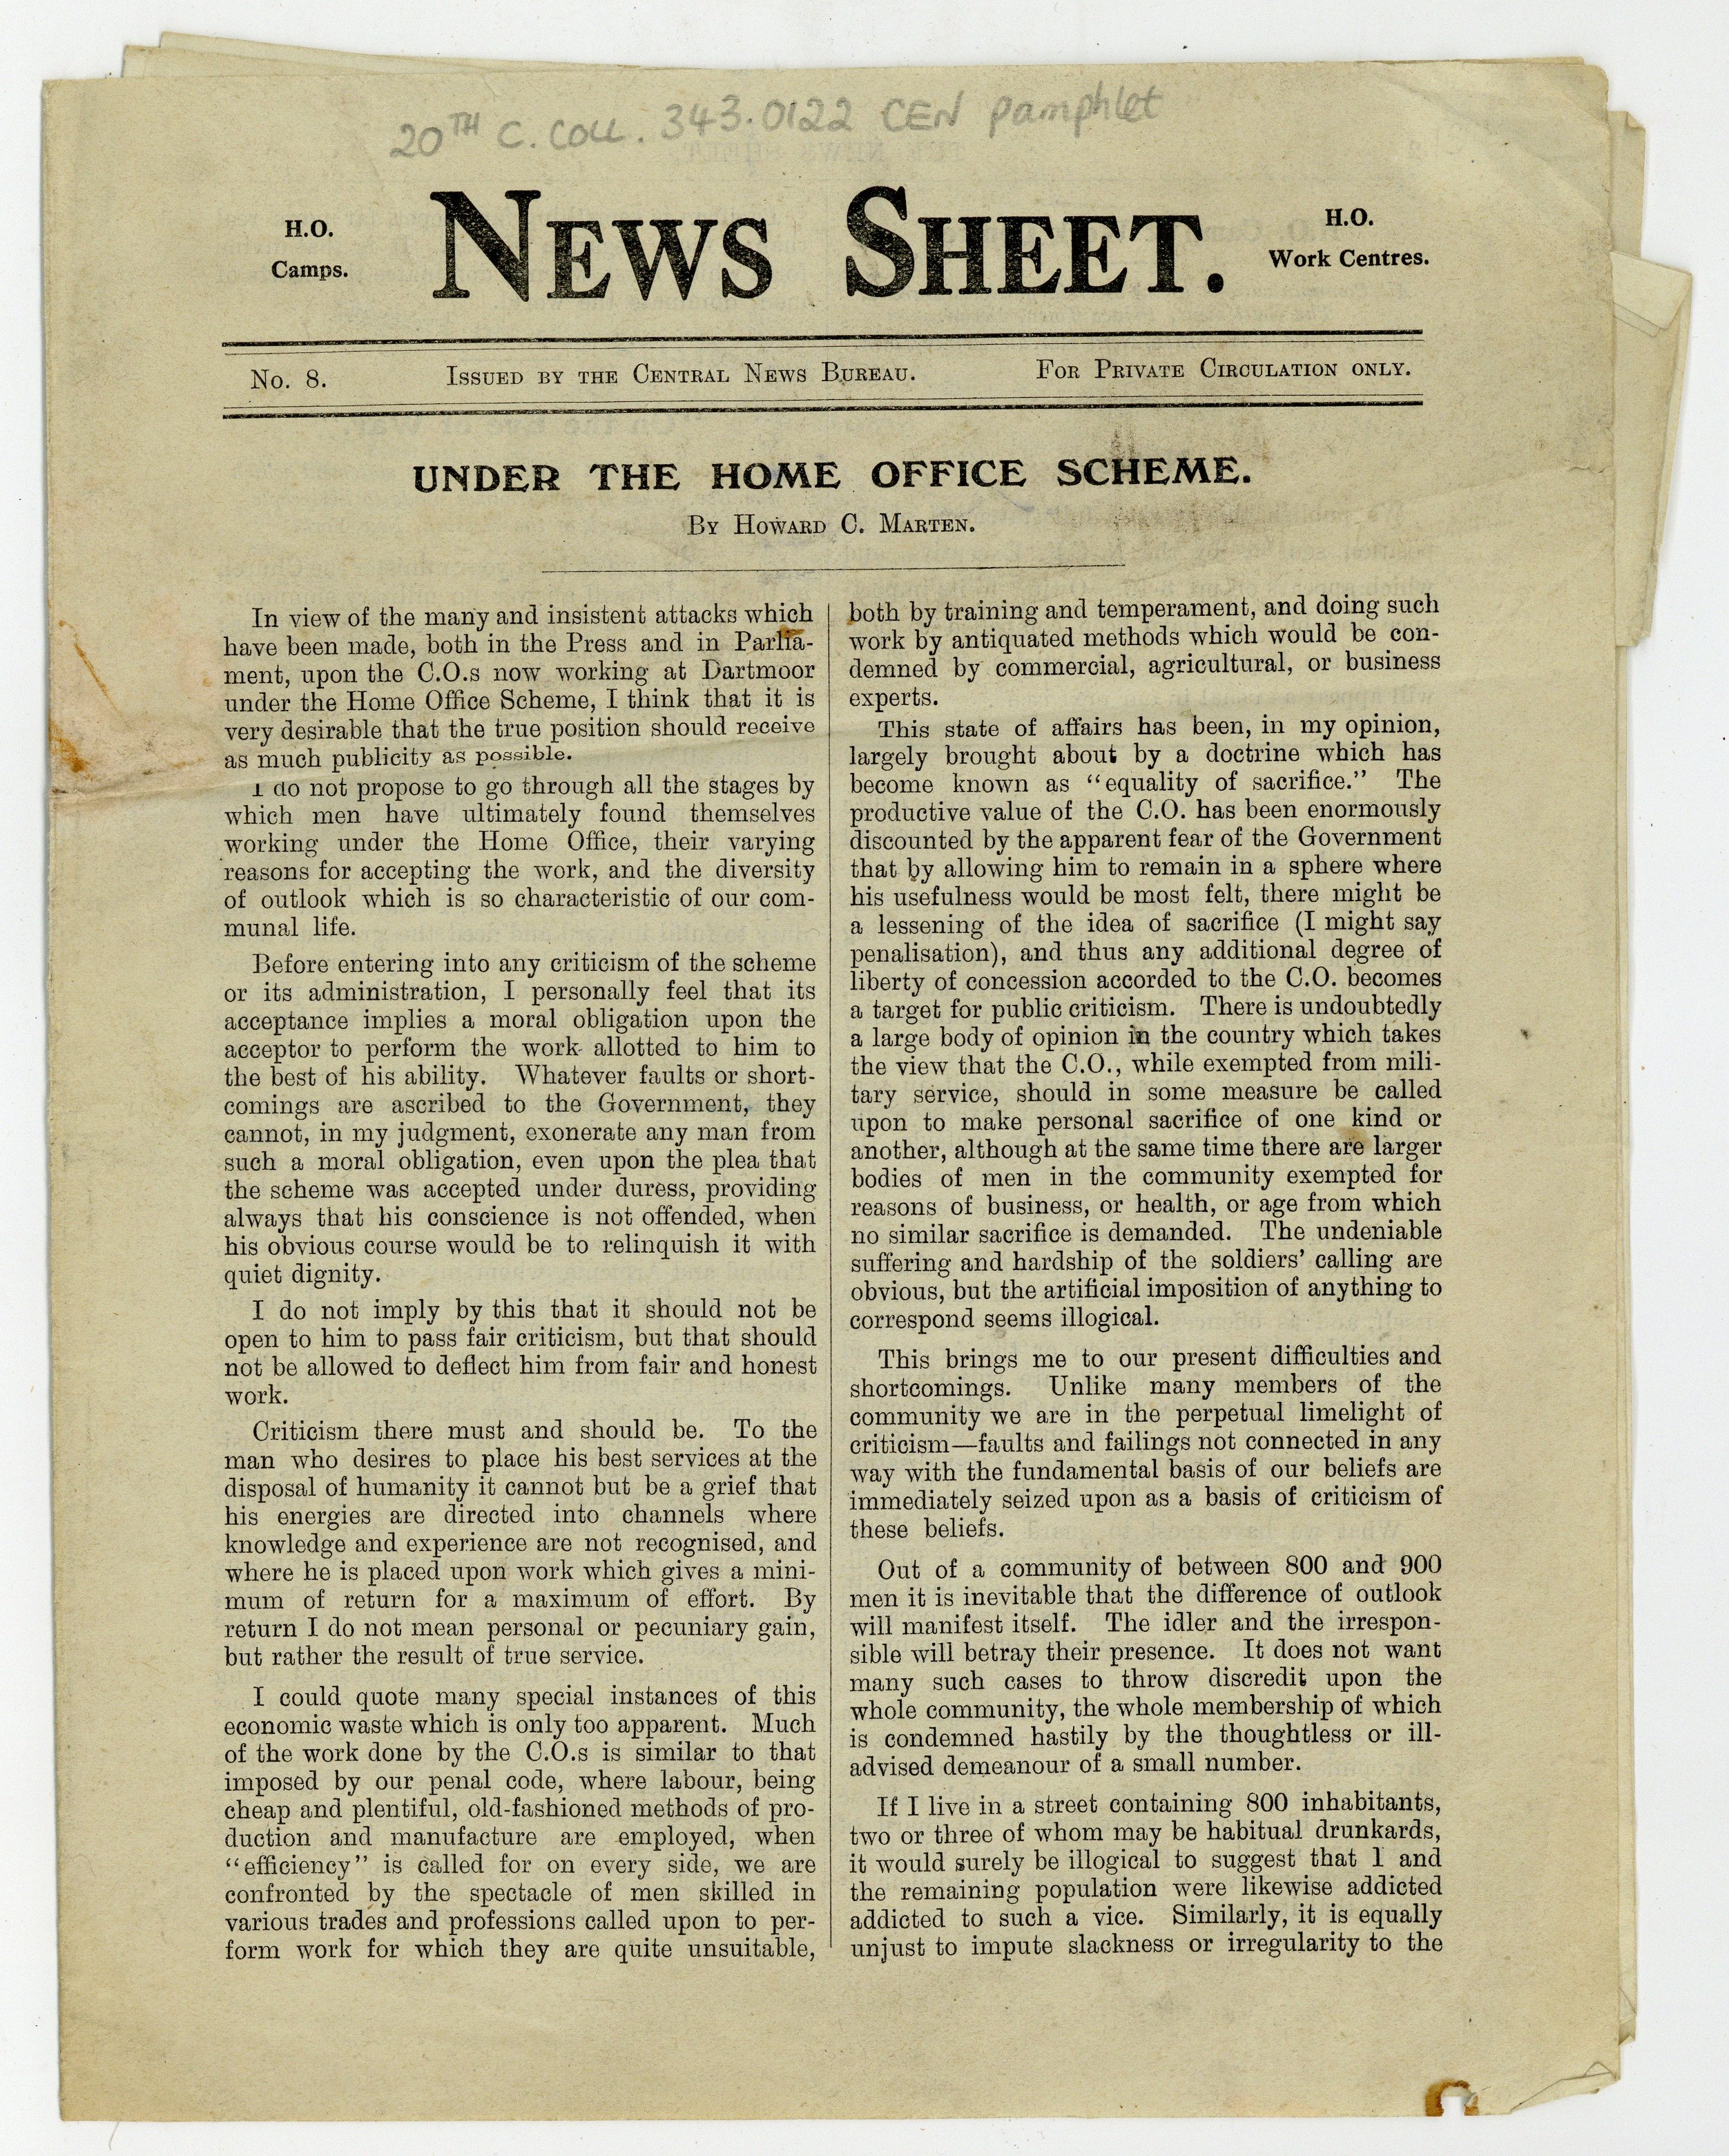 Page 1 from News Sheet, No. 8, c. 1917 (20th Century Collection, 343.0122 CEN)